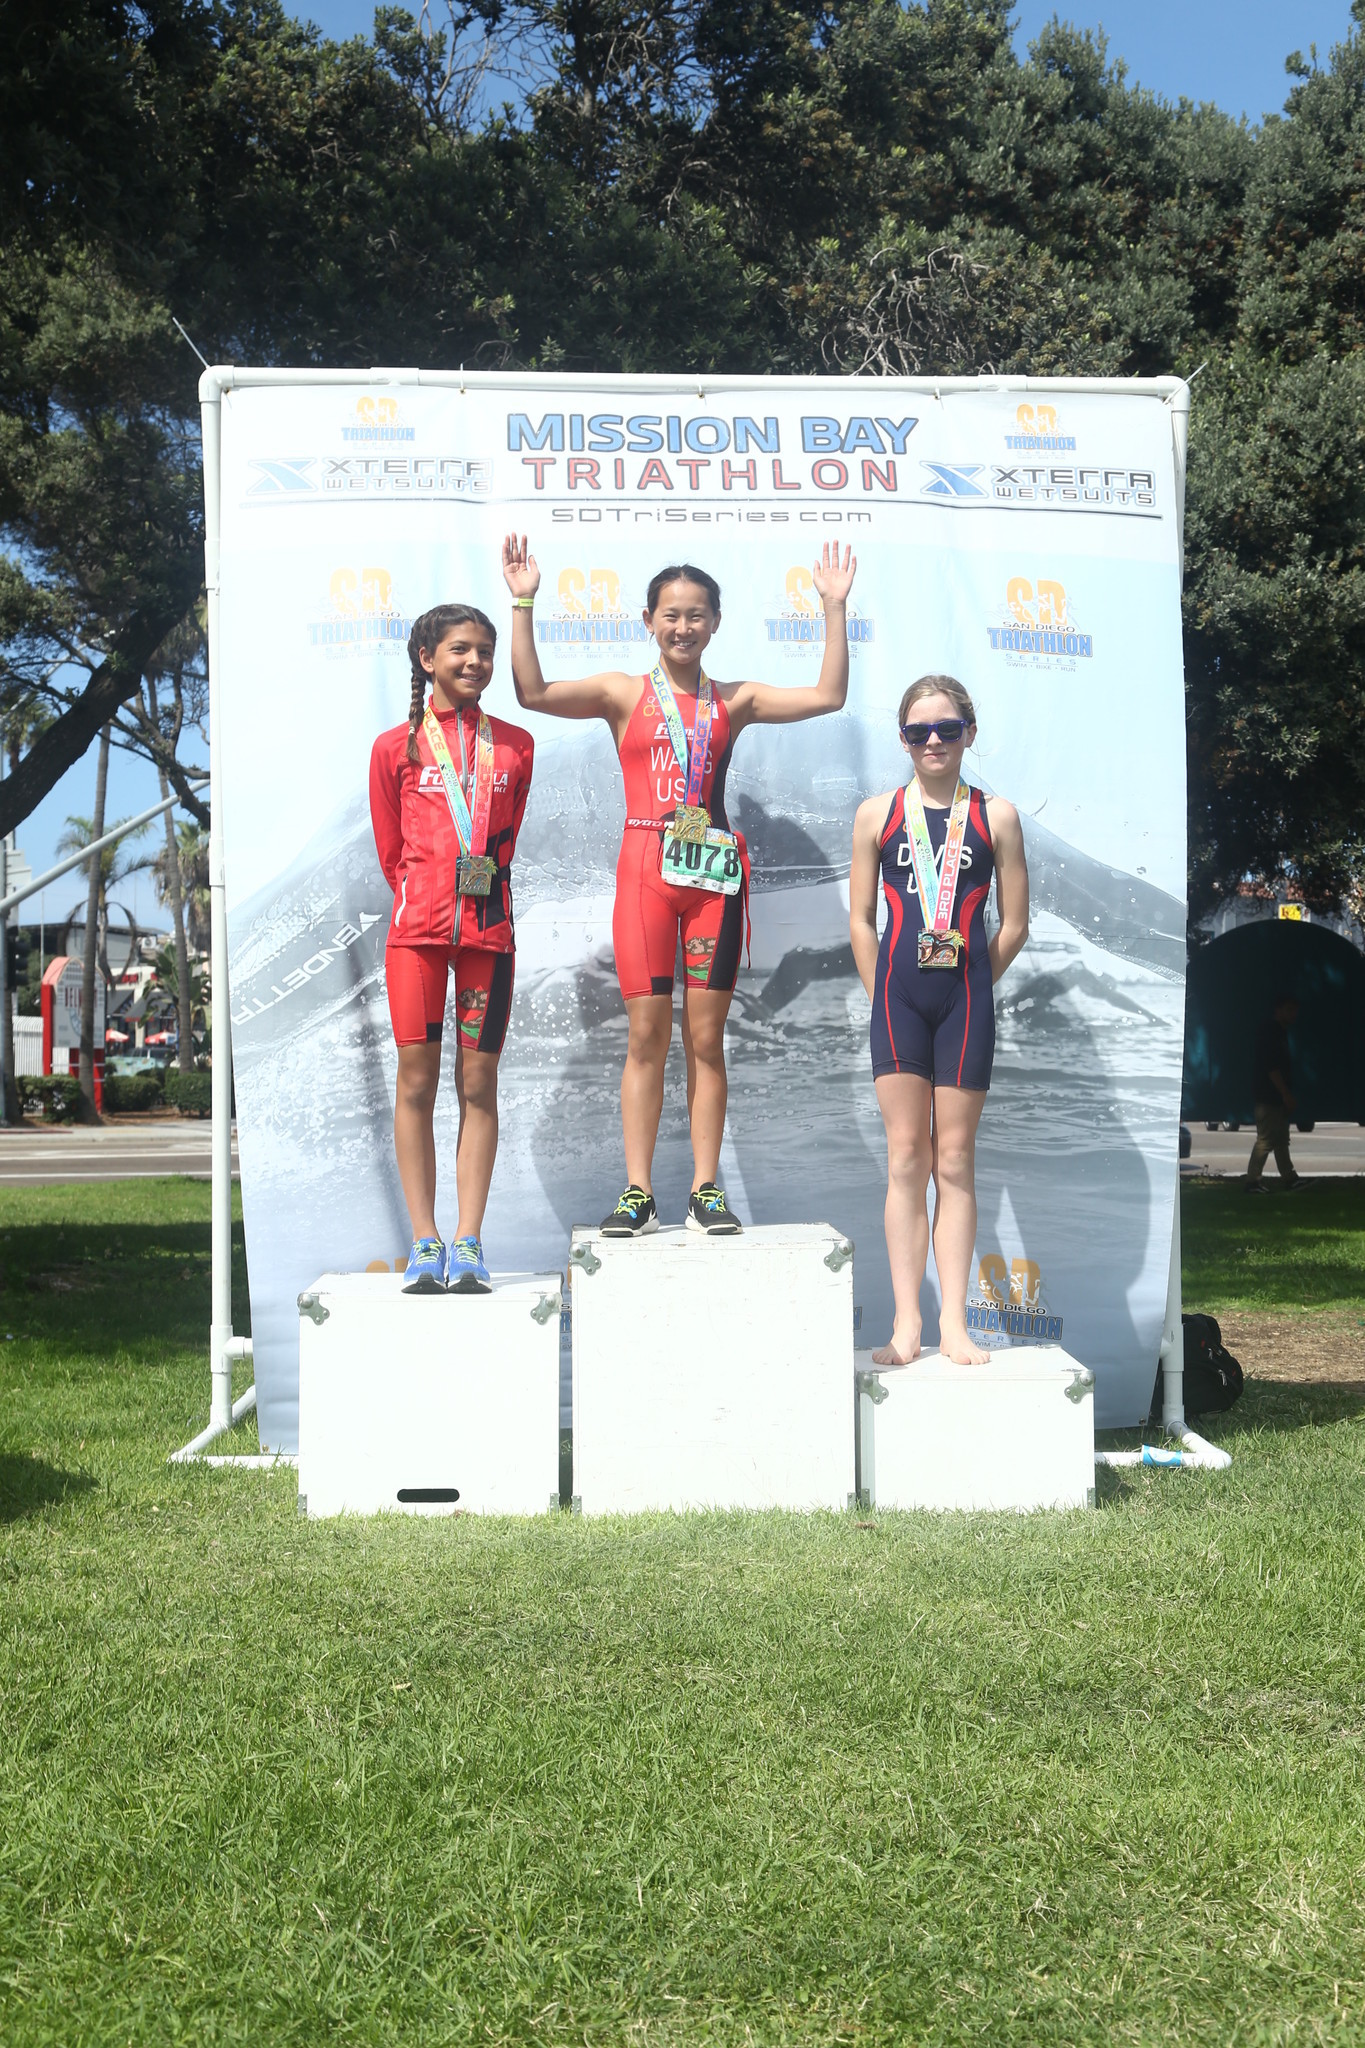 Natalie triathlon